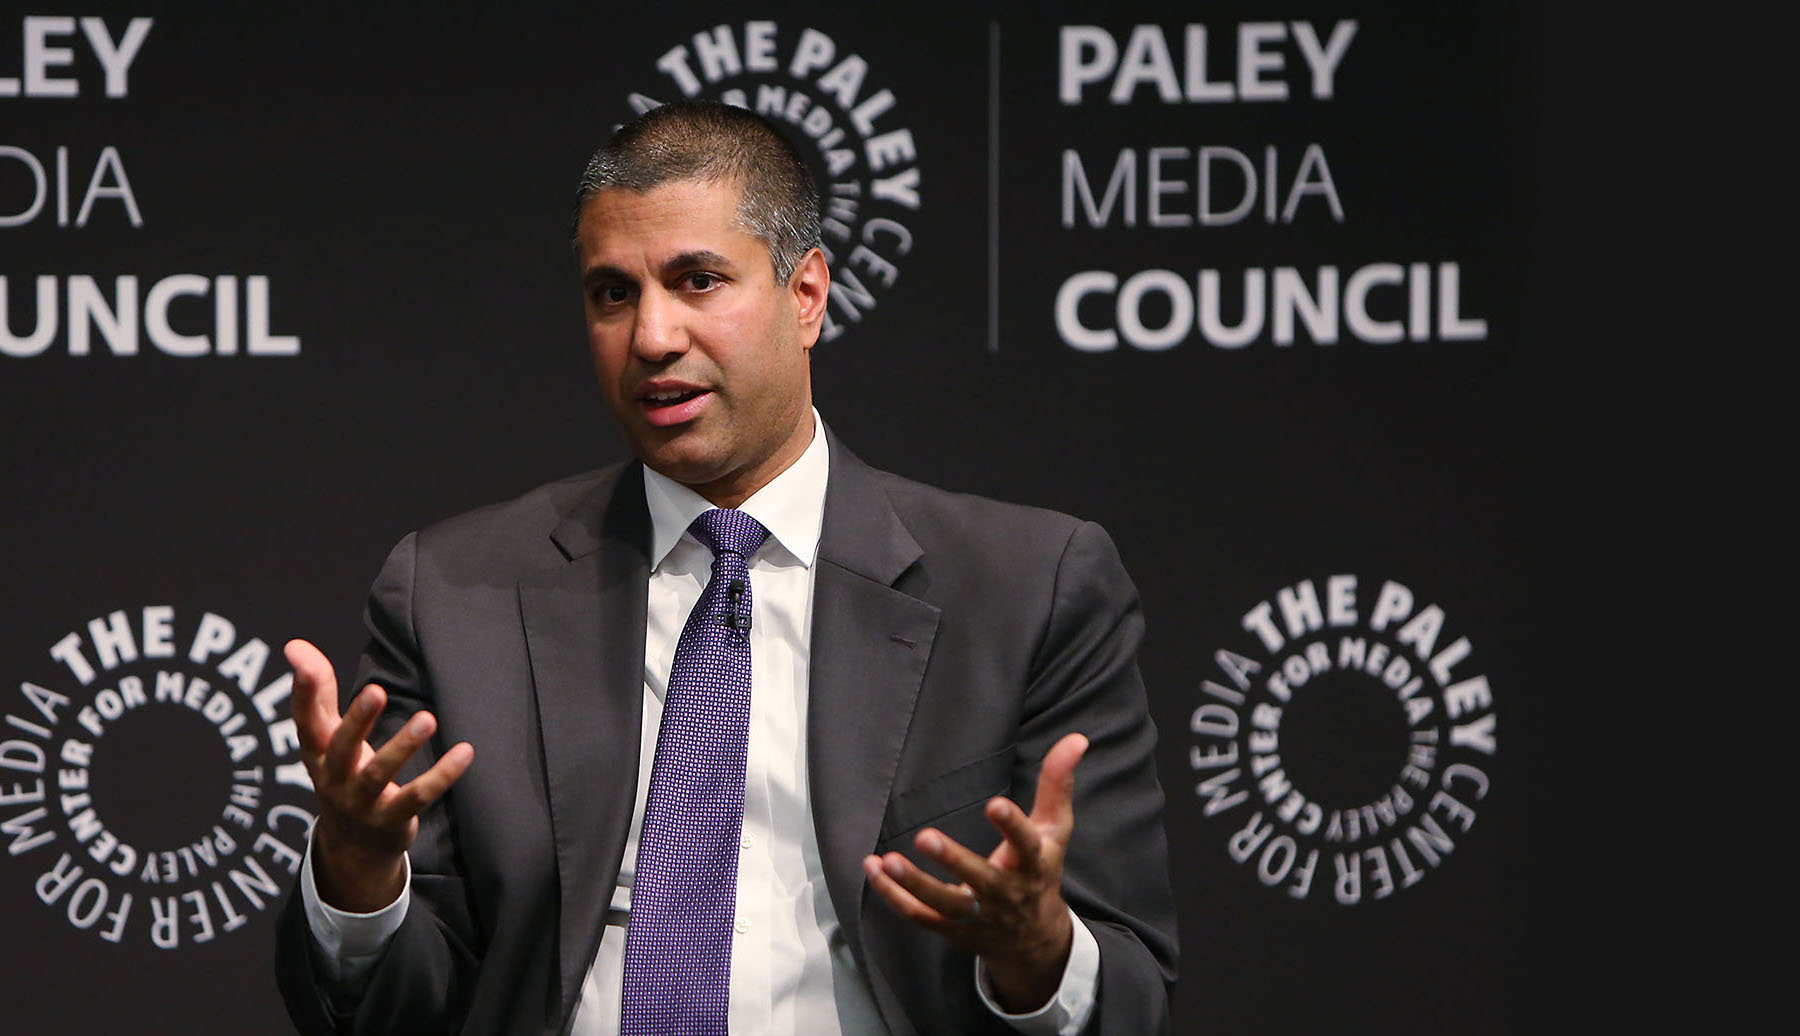 5G Regulation & Net Neutrality Discussion with the FCC Chairman Ajit Pai